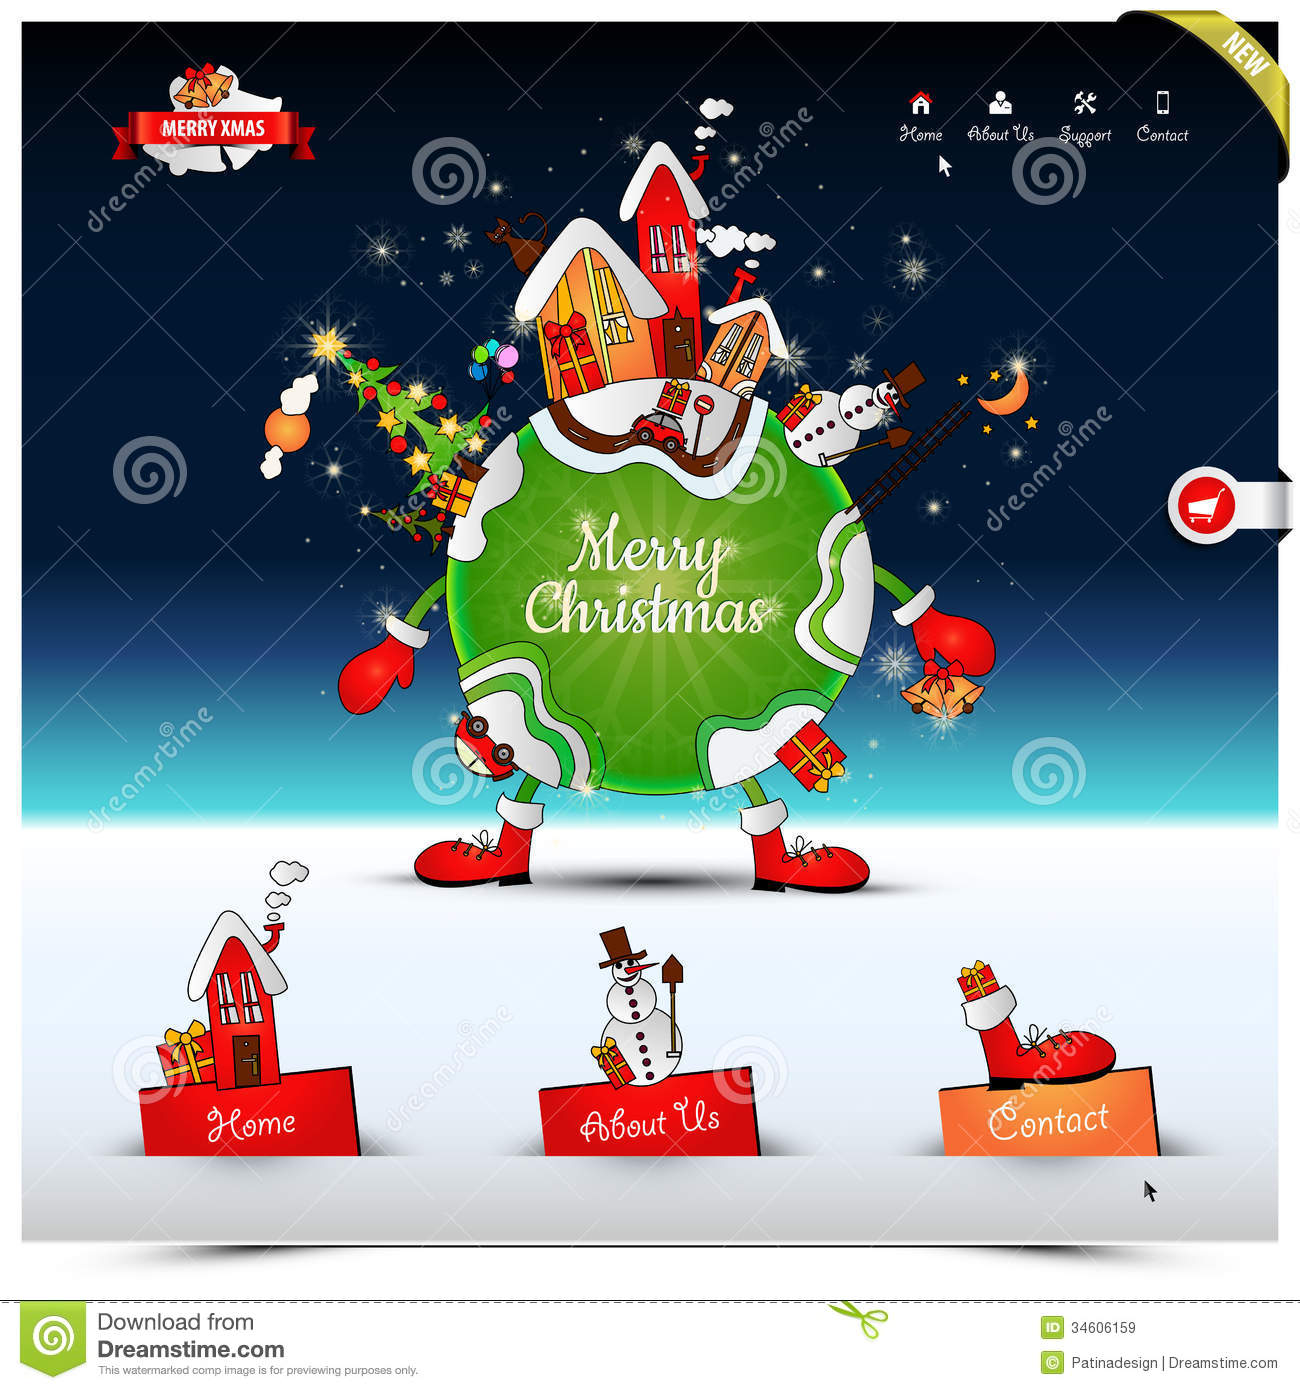 Christmas Night Website Template Royalty Free Stock Images - Image ...